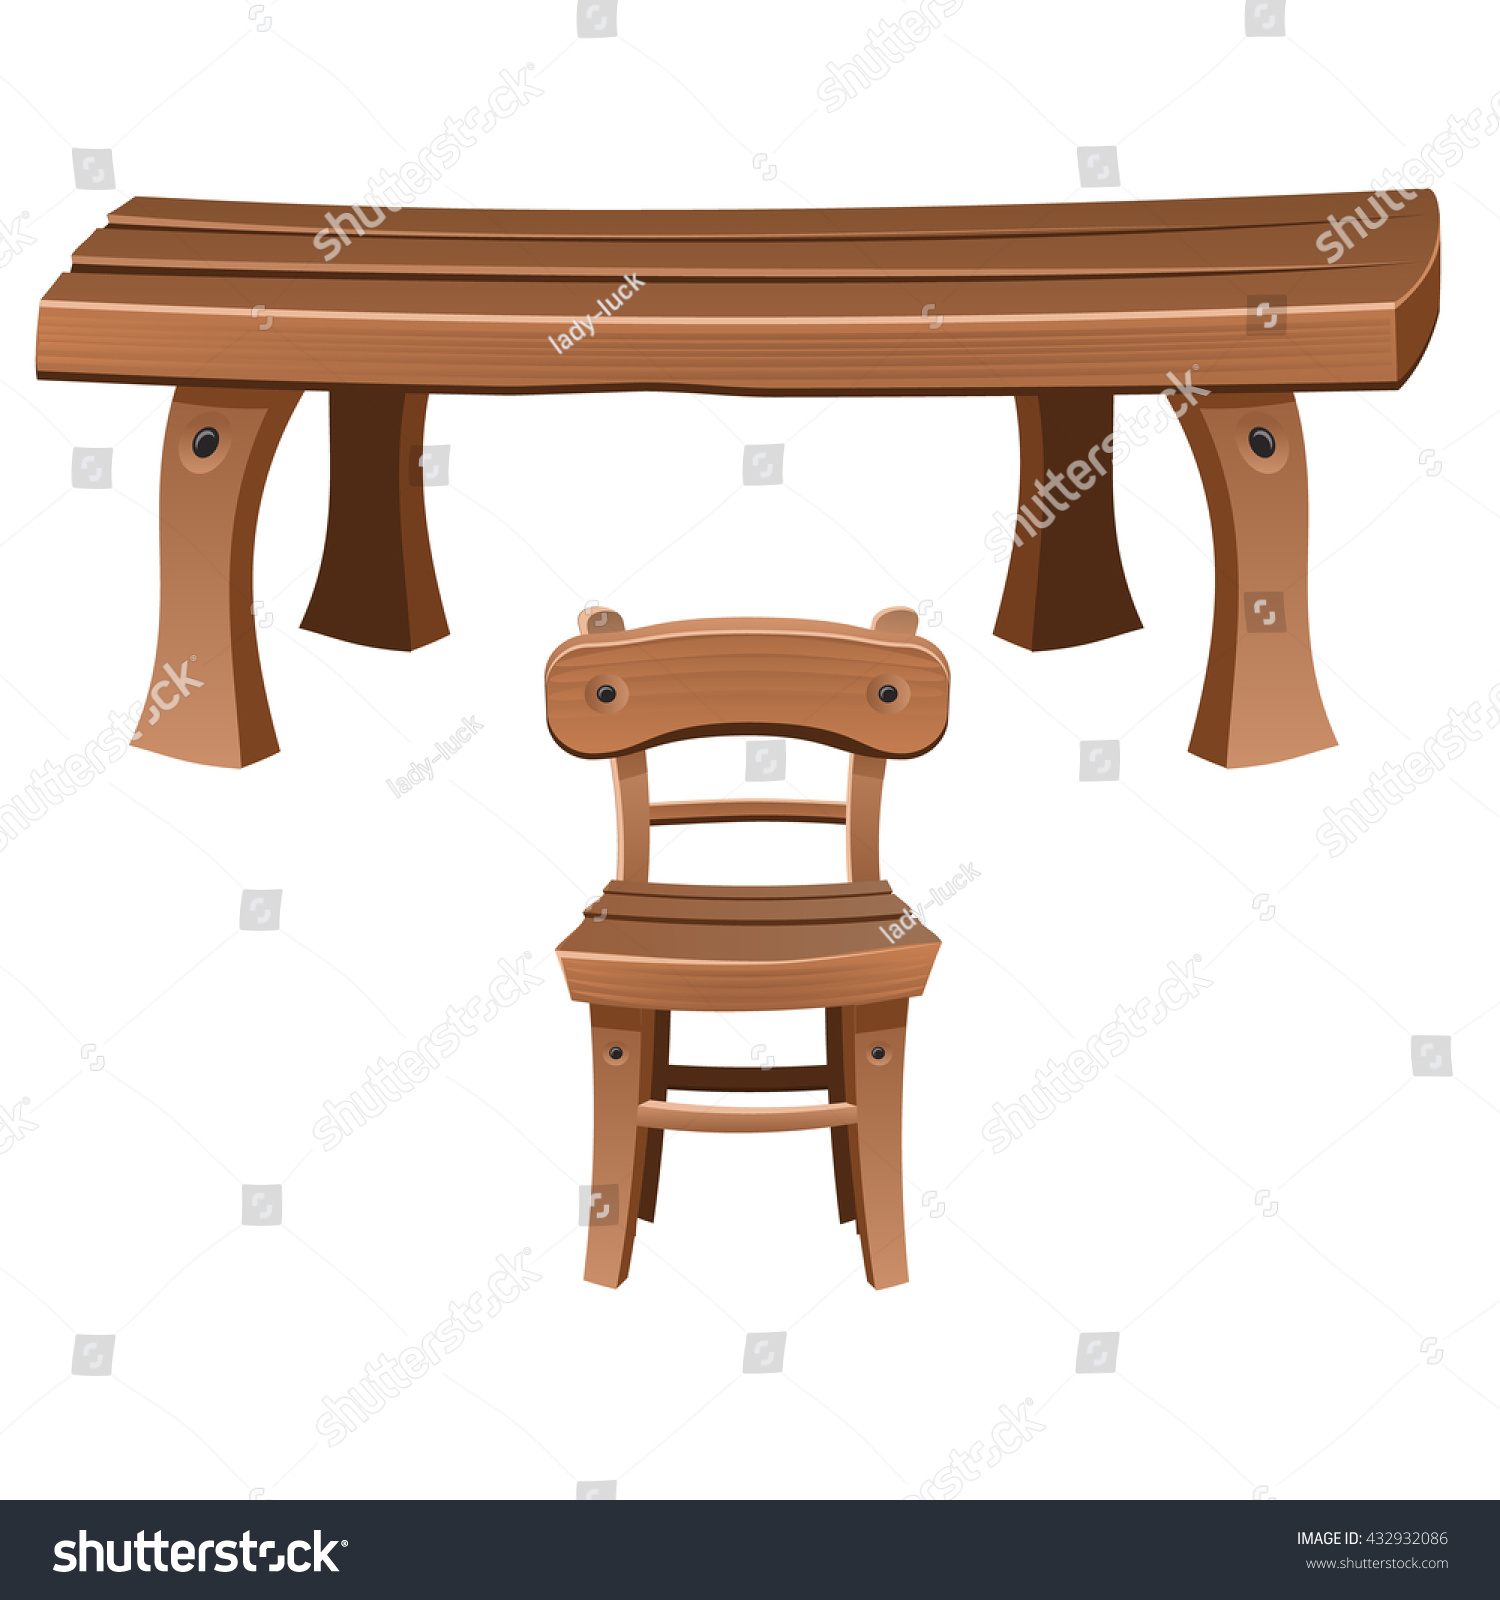 Set Wooden Furniture Chair Table Vector Stock Vector